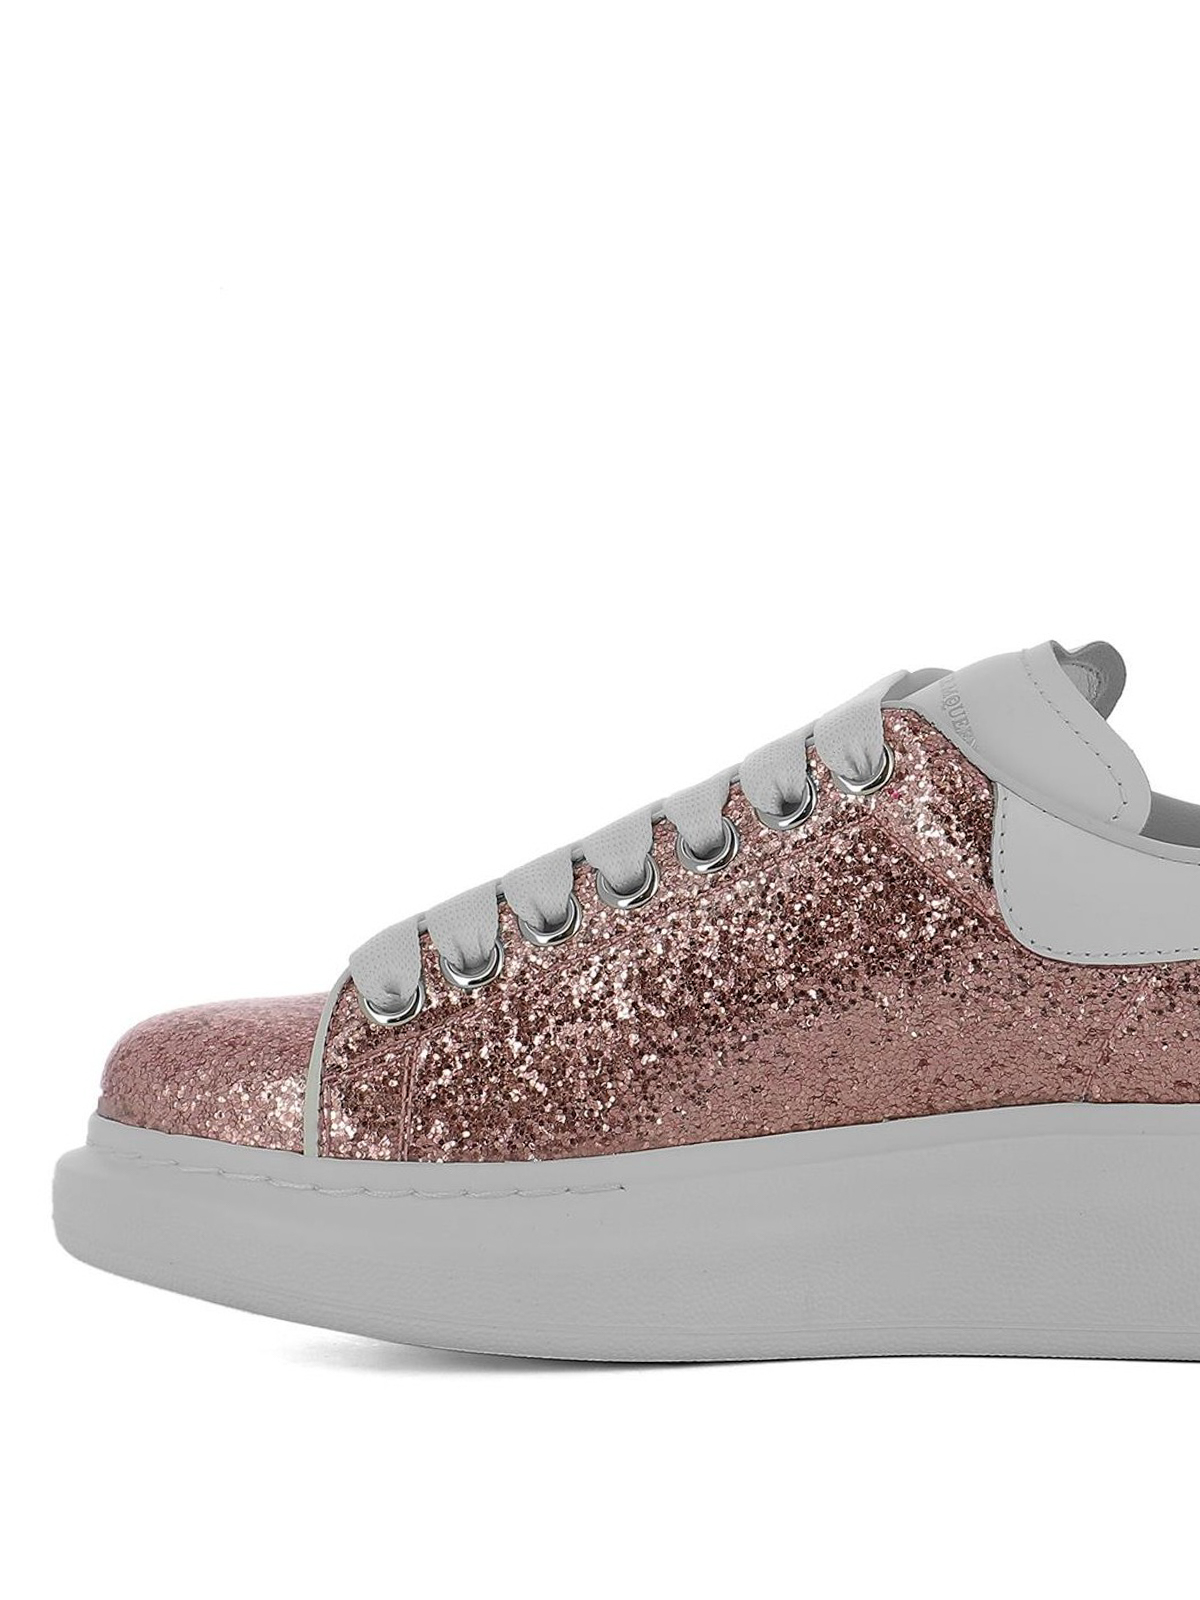 Oversize pink glitter sneakers